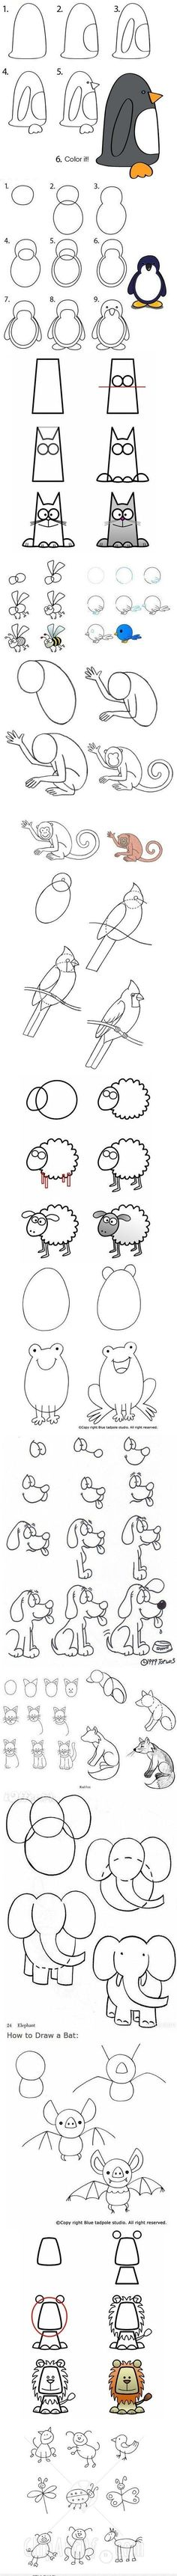 Color It. How to Draw